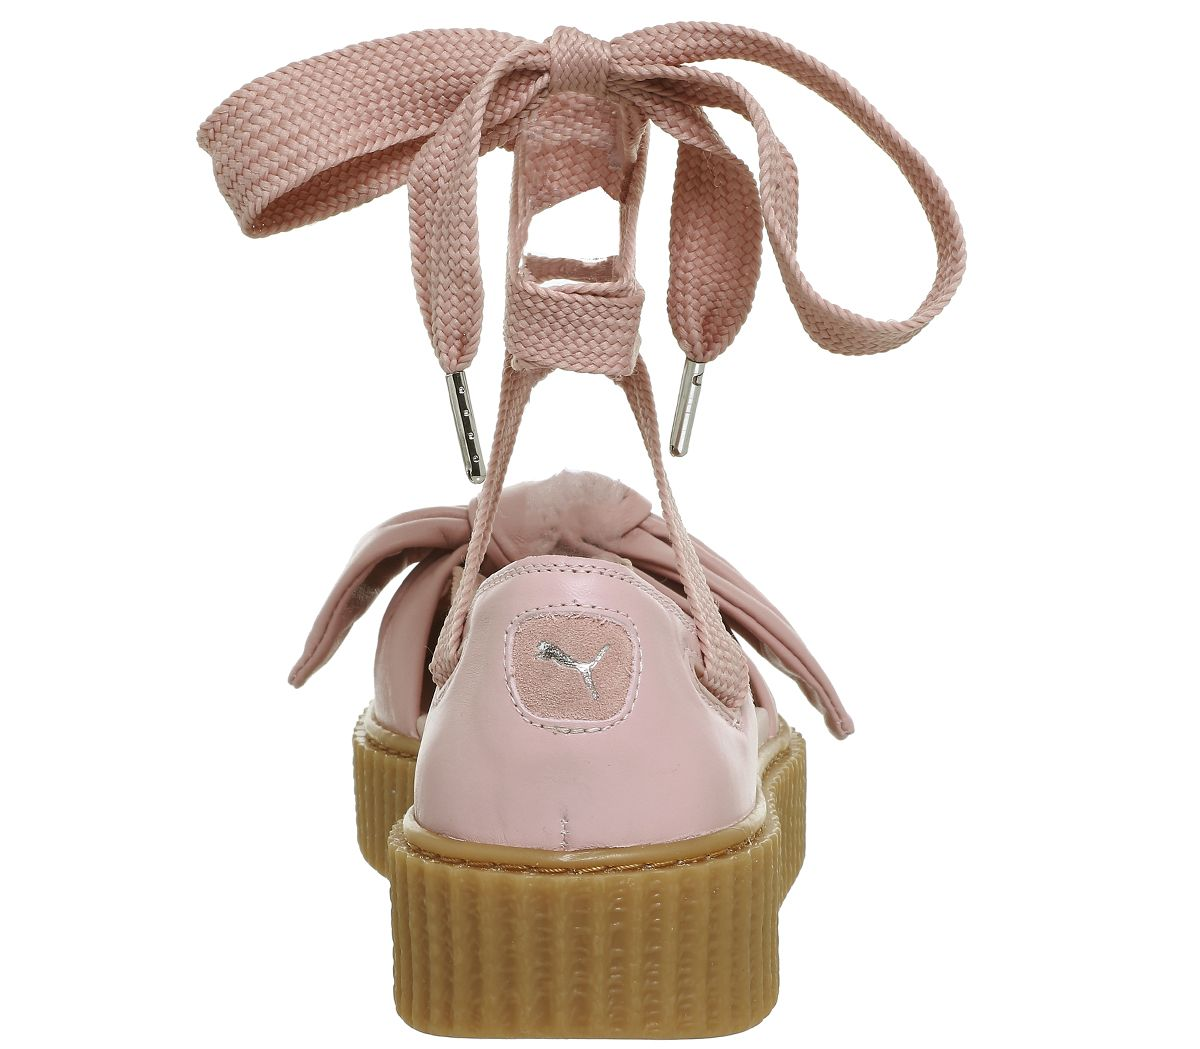 Womens-Puma-Creeper-Ballet-Lace-Pink-Fenty-Sandals thumbnail 16